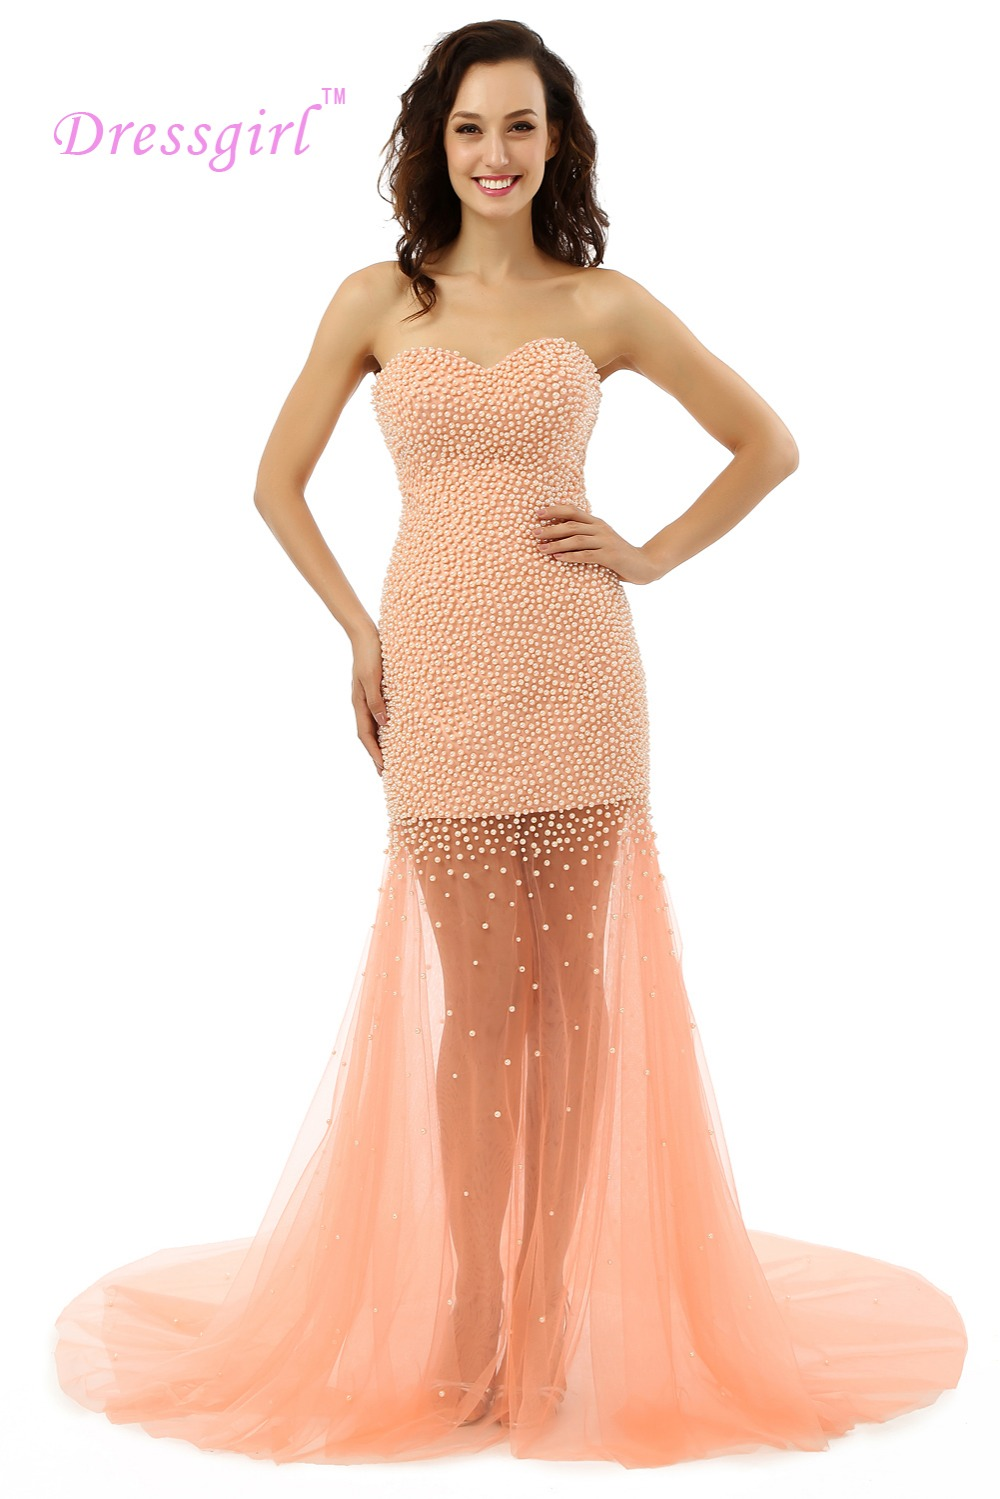 Dressgirl Coral 2017 Prom font b Dresses b font Mermaid Sweetheart Tulle See Through Pearls Prom